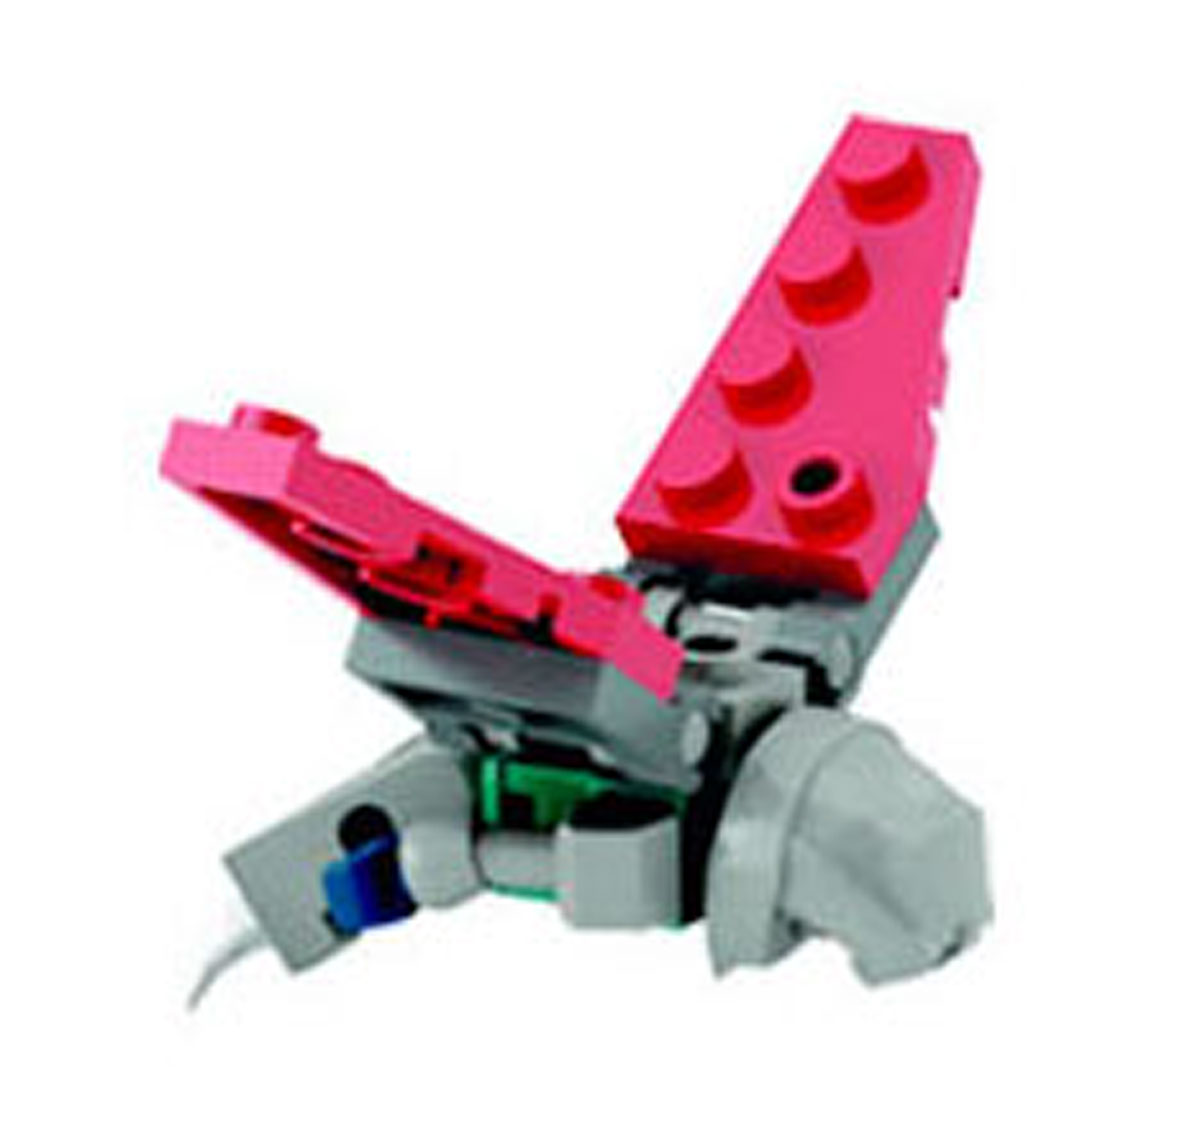 Transformers, Teenage Mutant Ninja Turtles, Masters of the Universe, Comic Books and more! listings from Seibertron.com: WINGSPAN HAWK Transformers Kre-o Micro-Changers Series 5 54 Kreon New